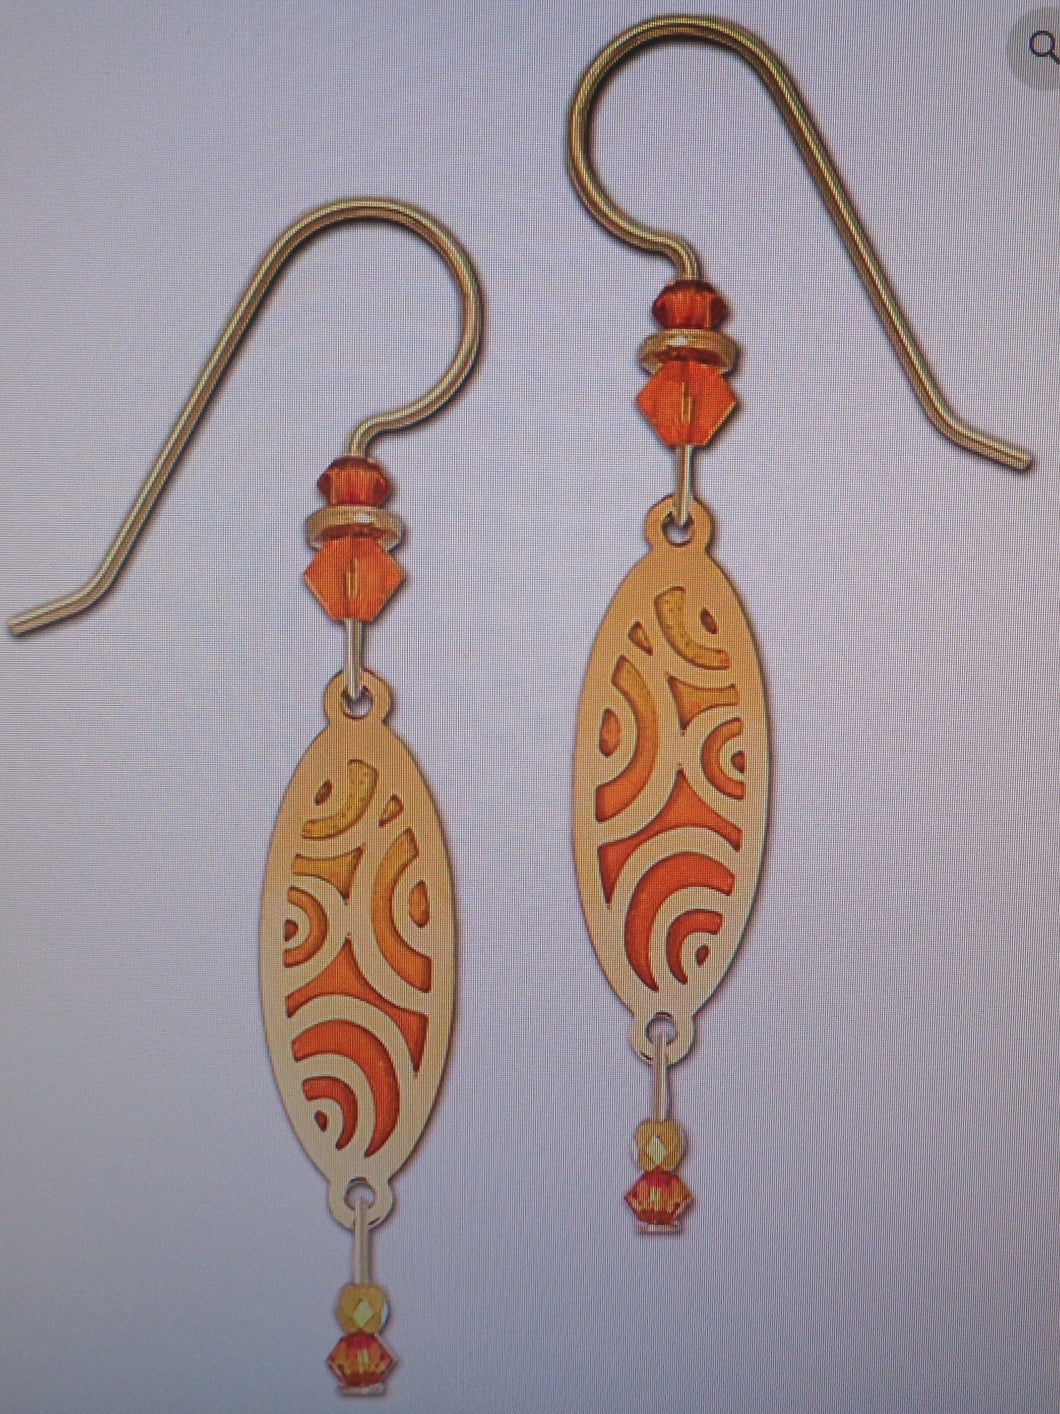 Earrings by Adajio, GP Circles over Orange Backer with Bead Drop